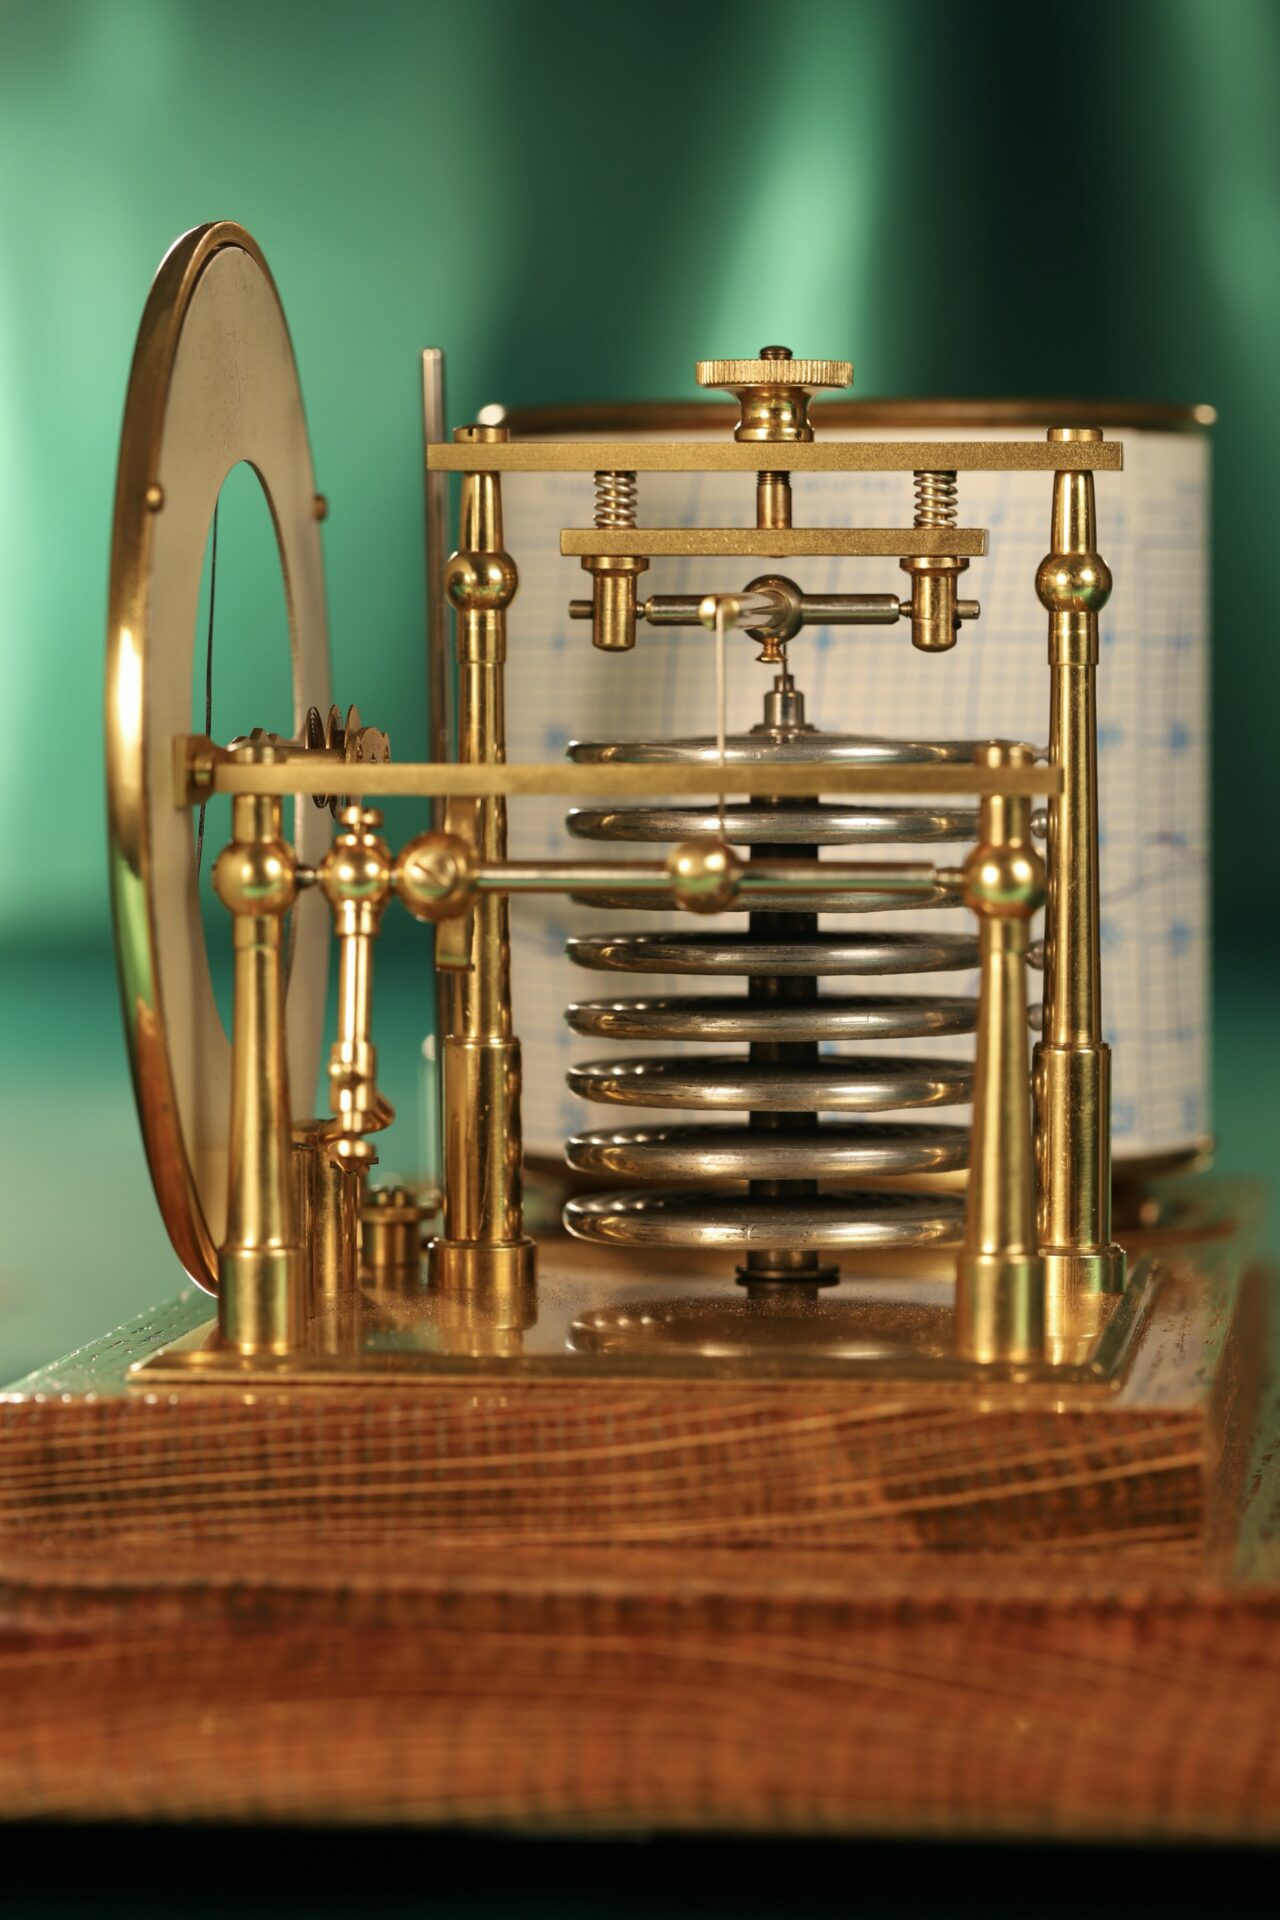 Close up of Short & Mason Tycos Drum Barograph with Dial No 5431 c1930 with case lid removed, taken end on focusing on capsule stack and adjustment screw above